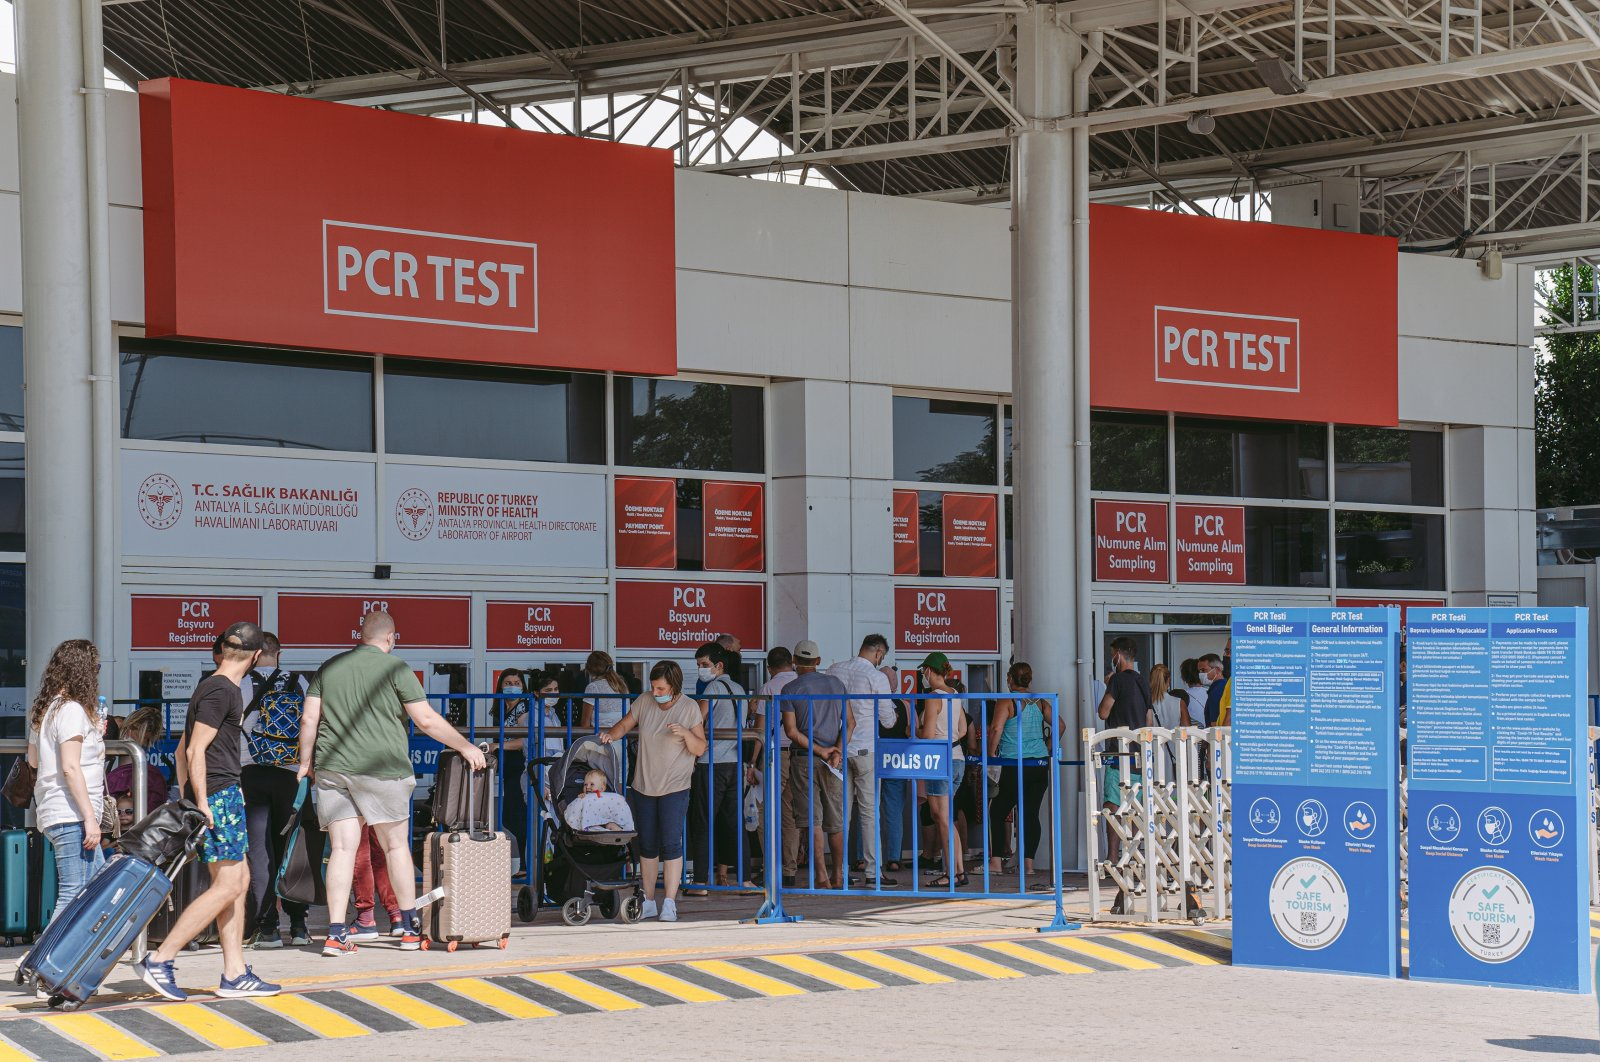 Tourists queue at the PCR test laboratory after arrival at the airport, Antalya, southern Turkey, Sept. 4, 2020. (Shutterstock Photo by Andrii Oleksiienko)